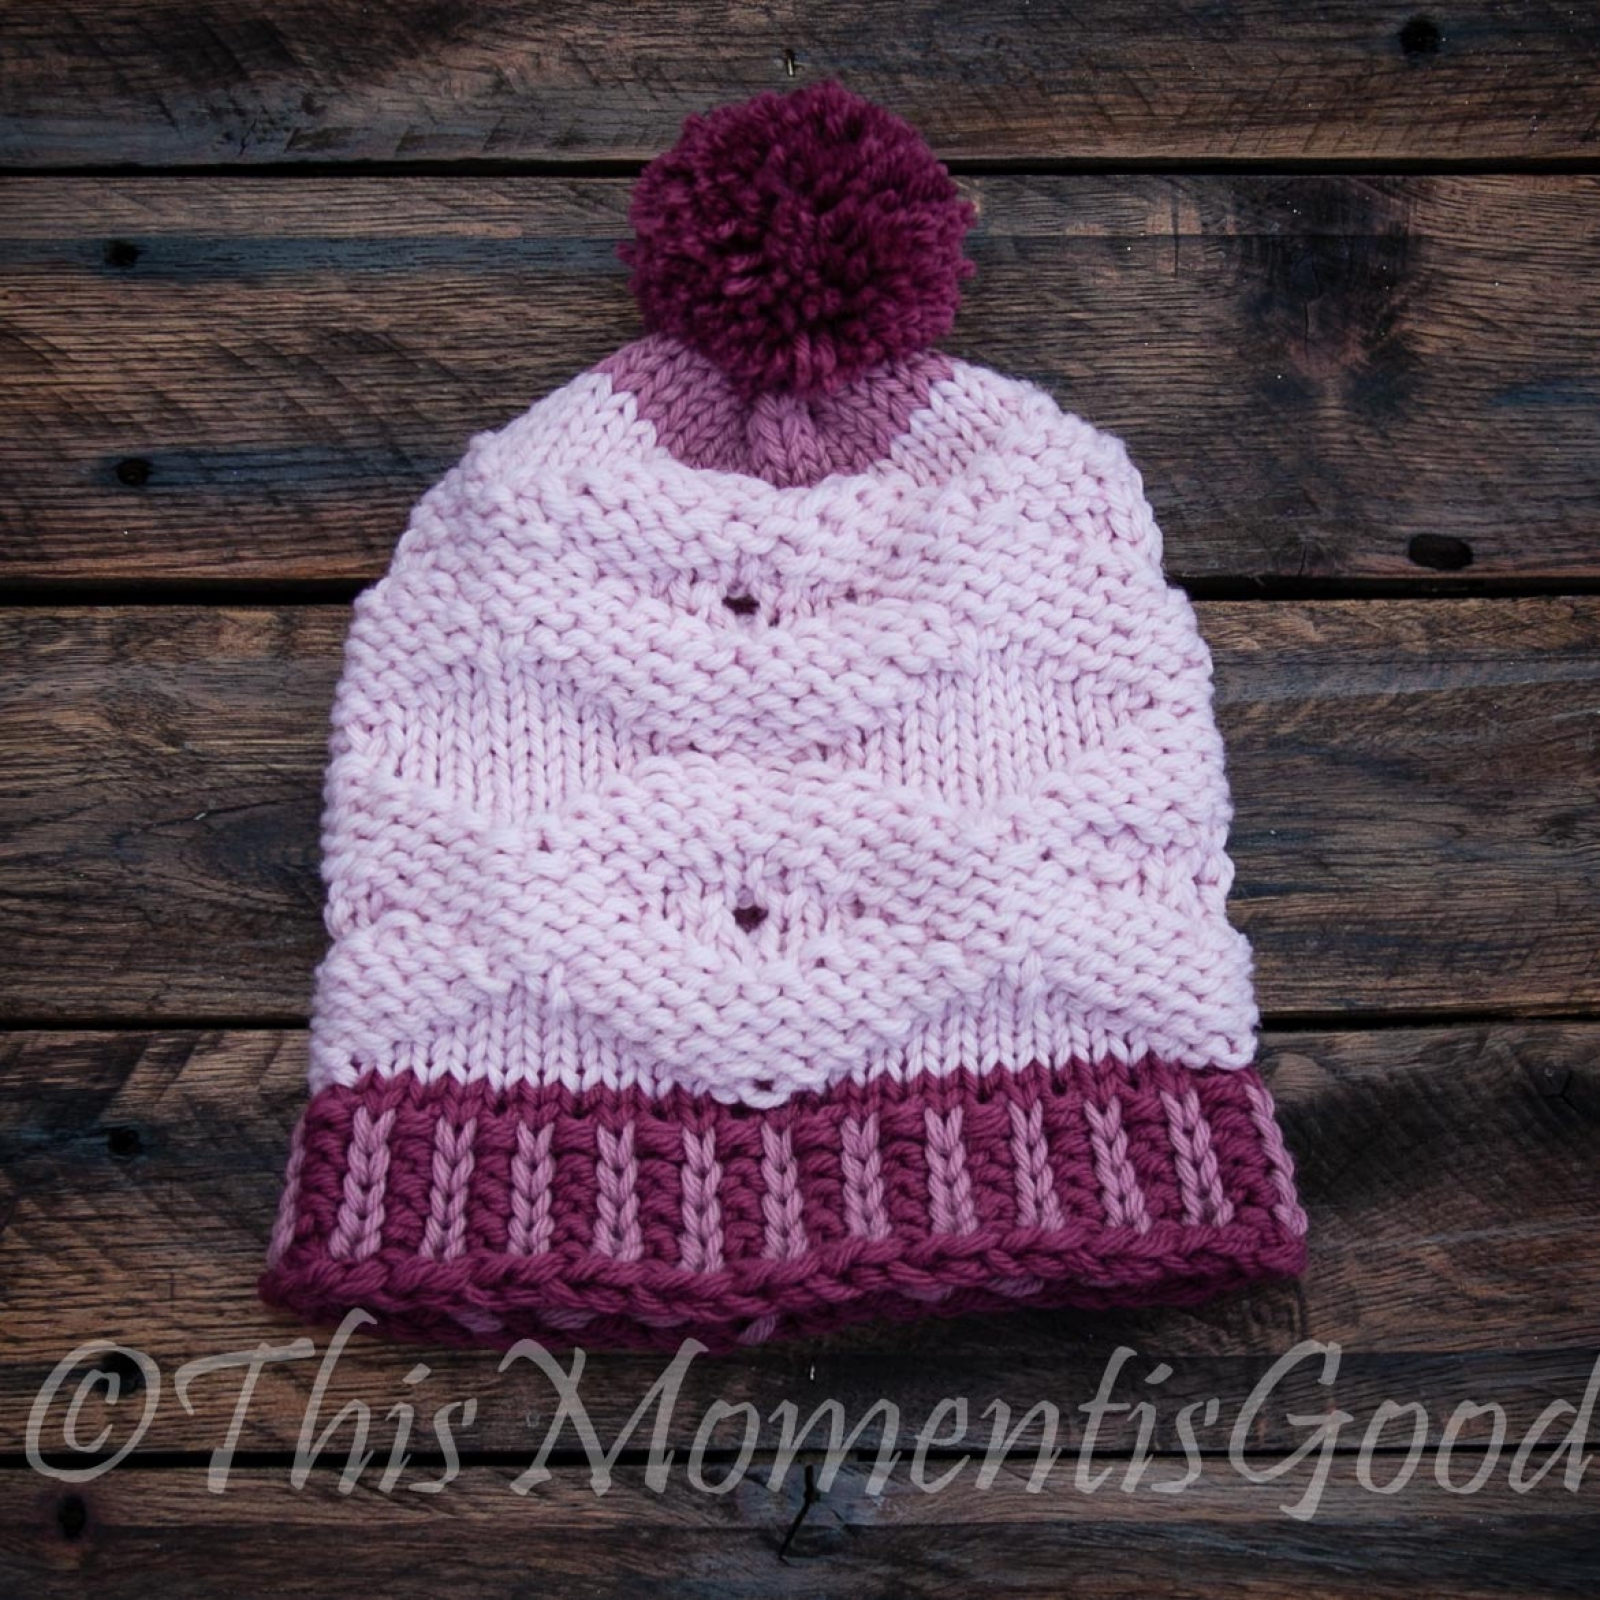 Loom Knitting Patterns 4 Beautiful Hat Patterns Included